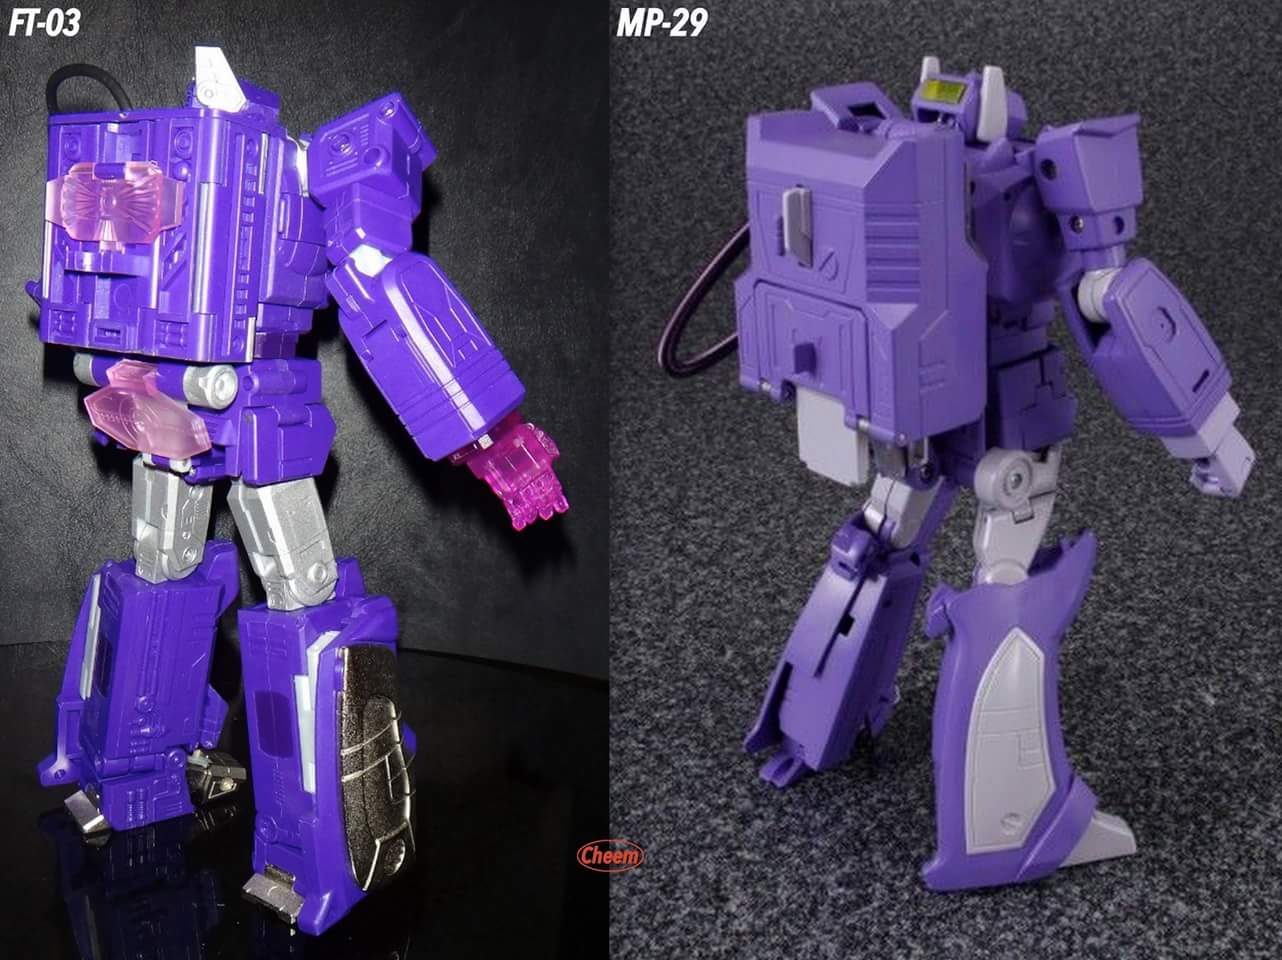 [Masterpiece] MP-29 Shockwave/Onde de Choc IguxXEnt